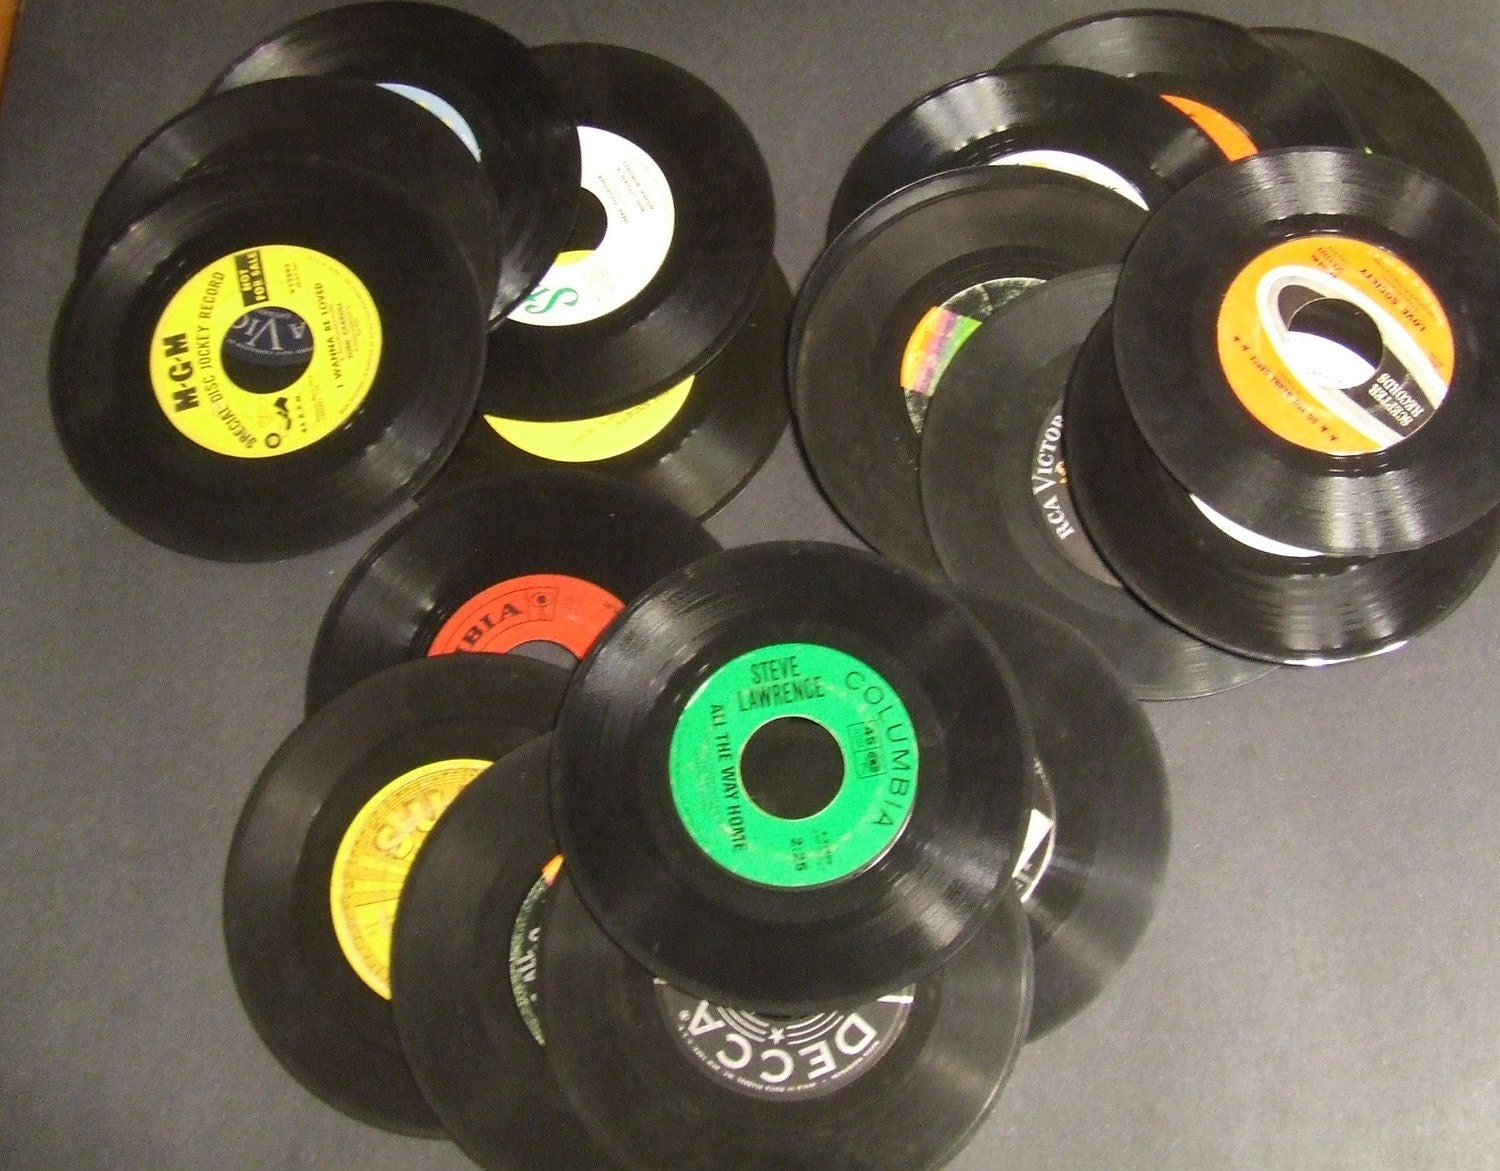 20 vintage vinyl 7 inch 45 records for crafts by rockobilia